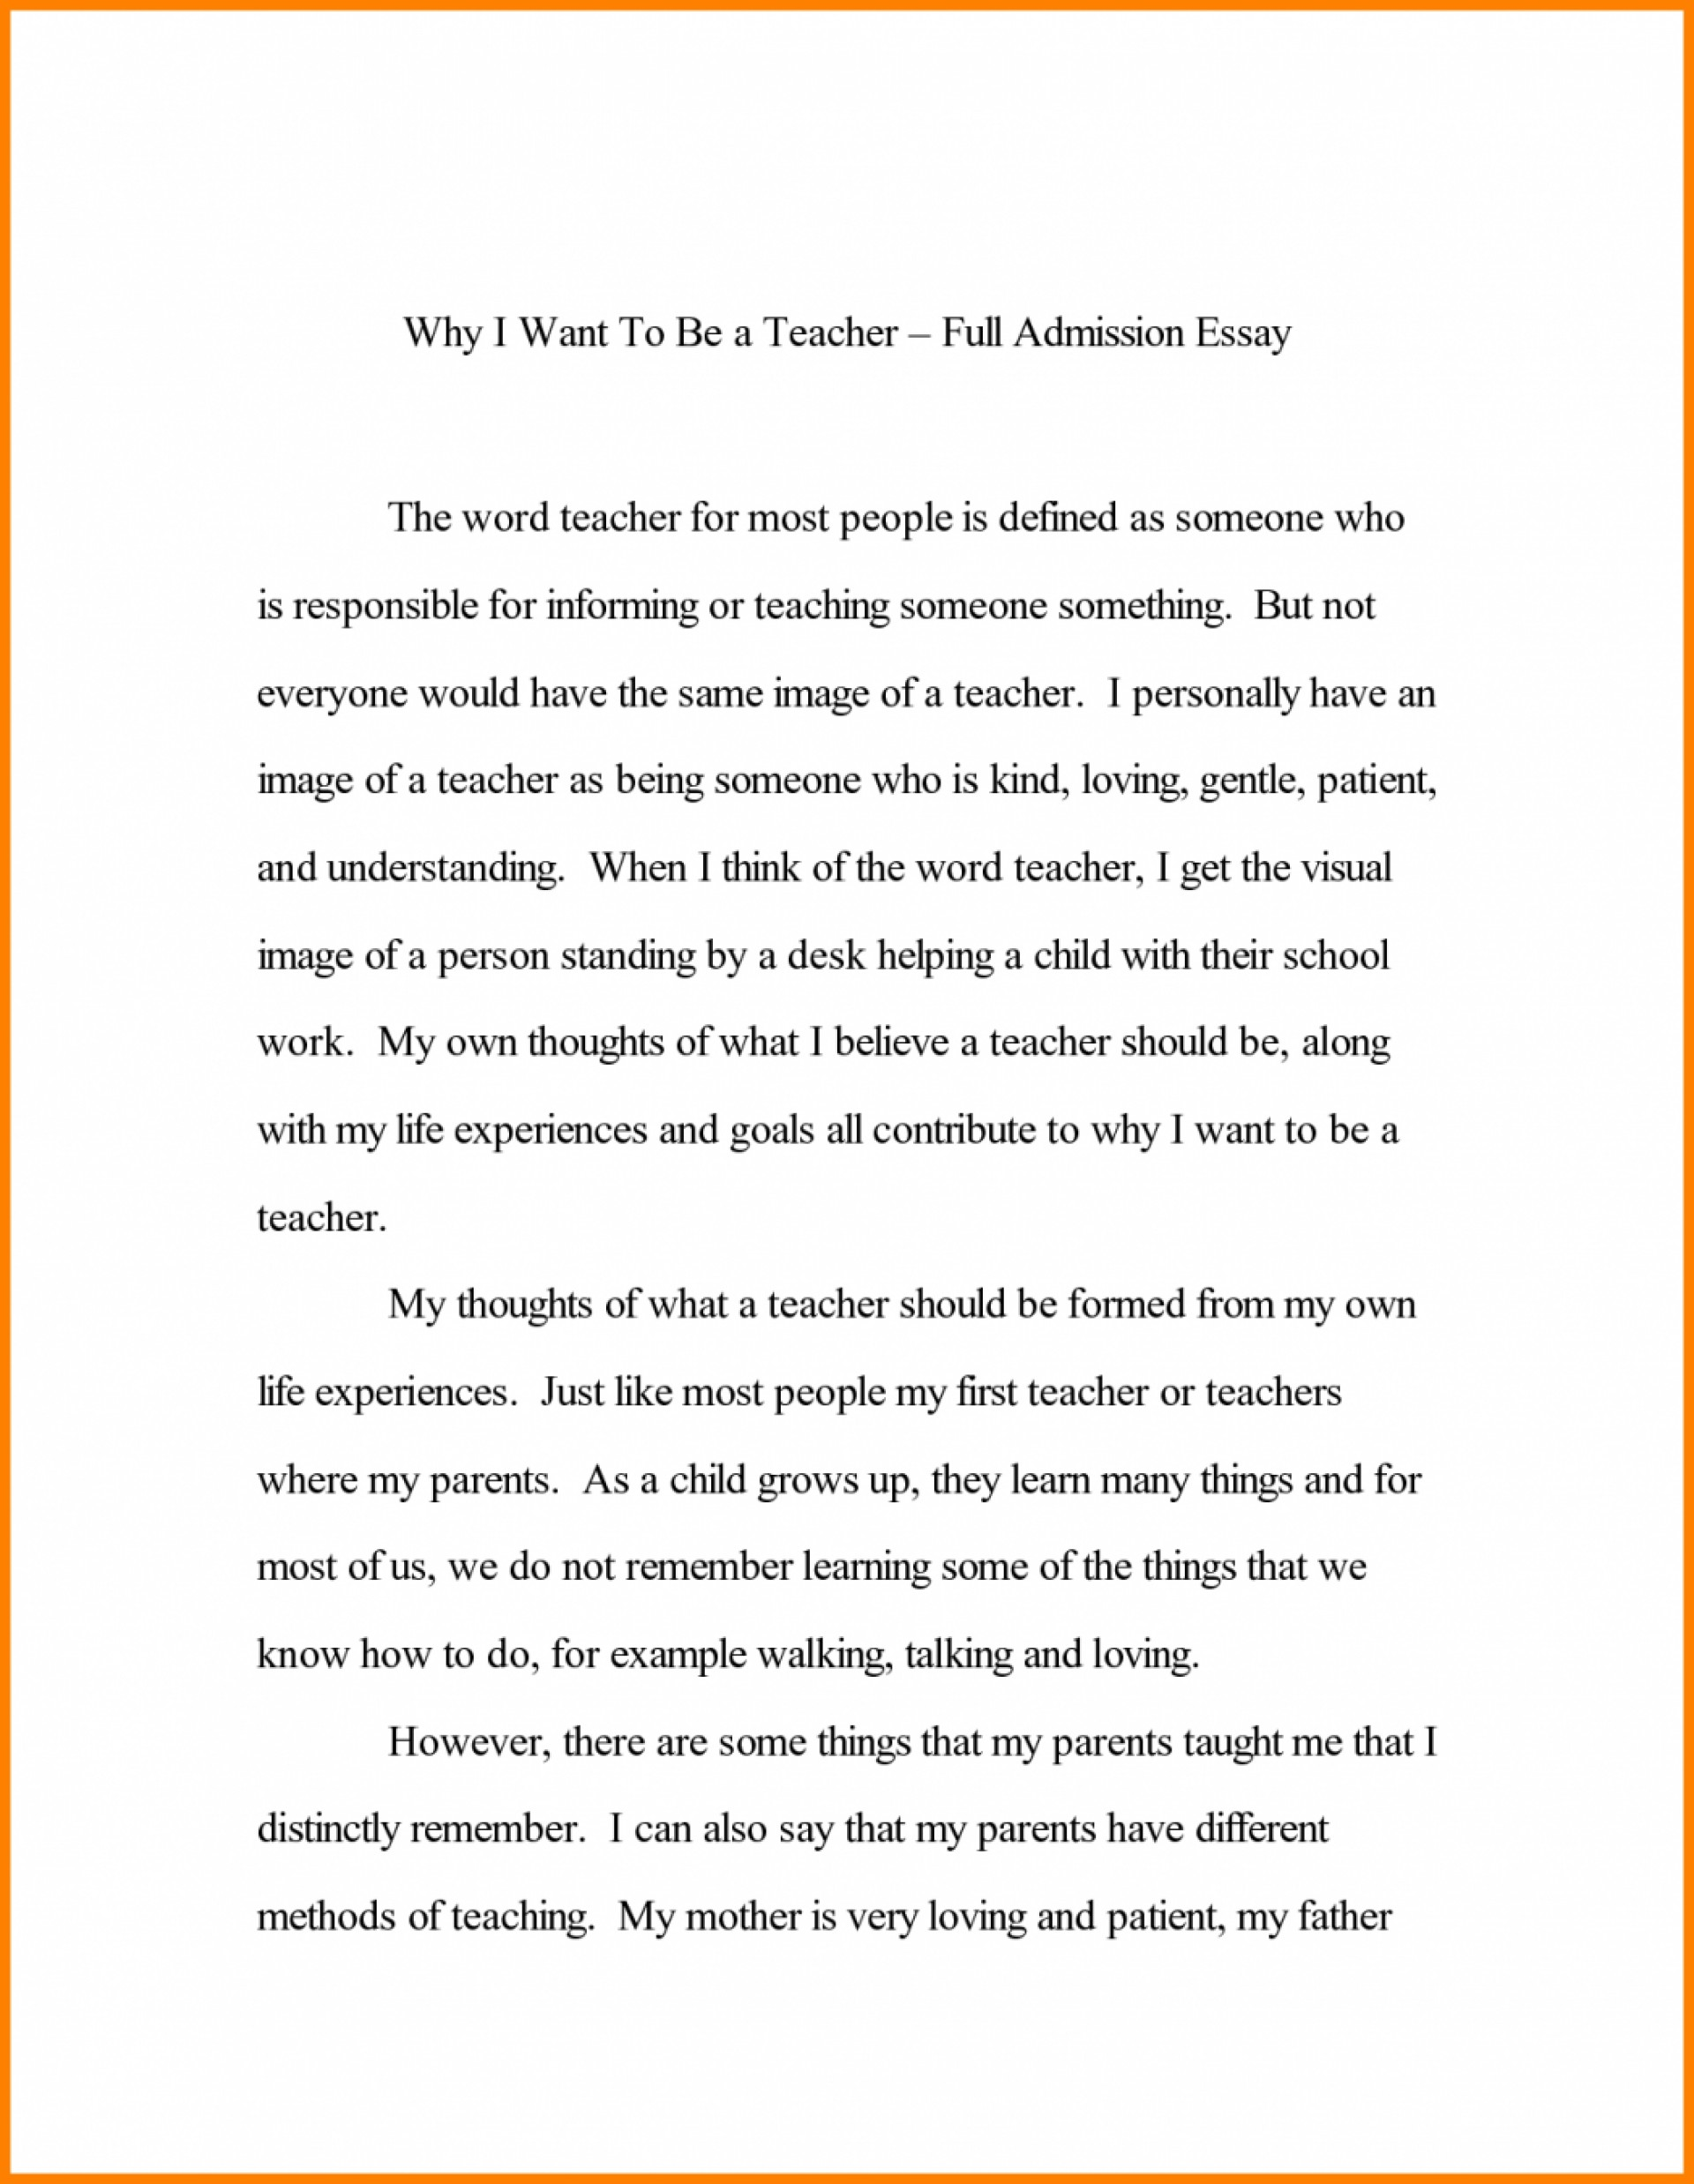 018 Common App Example Essays That Worked Application College Essay Sample For Guidelines Unique Best Samples Option 1 Prompt 2016 2017 1920